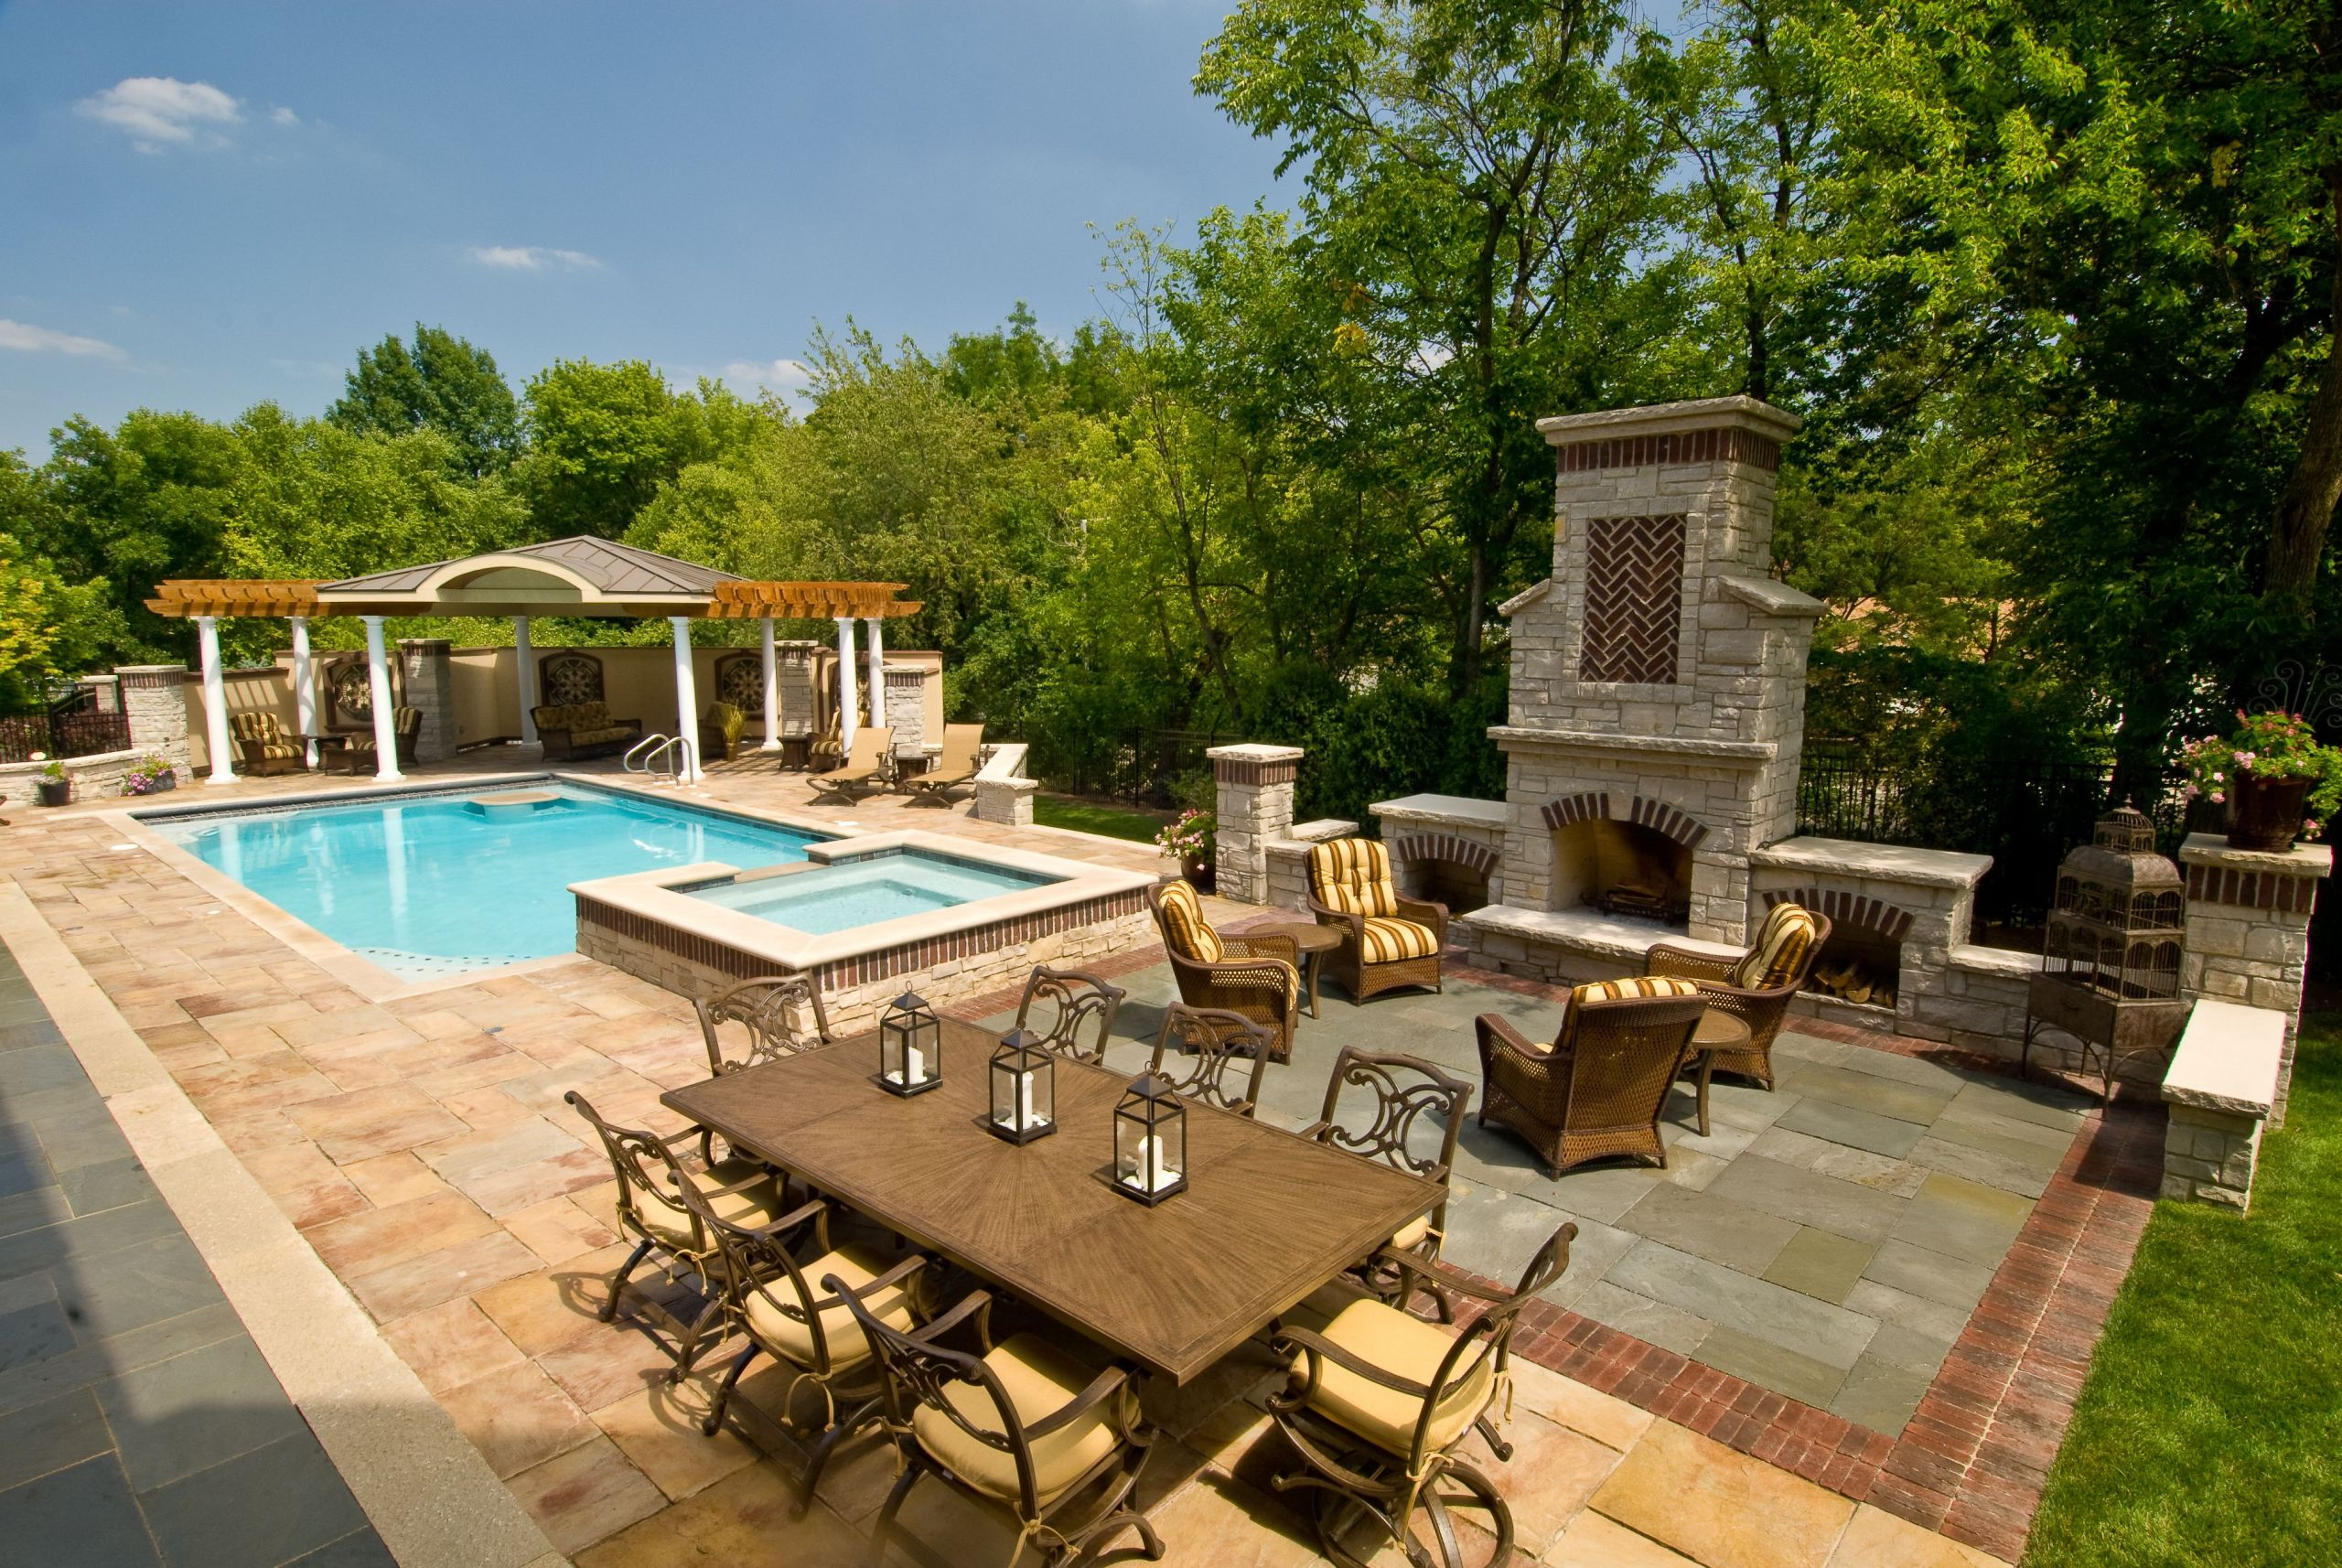 Pool Images Backyard  Backyard Landscaping Ideas for Beginners and Some Factors